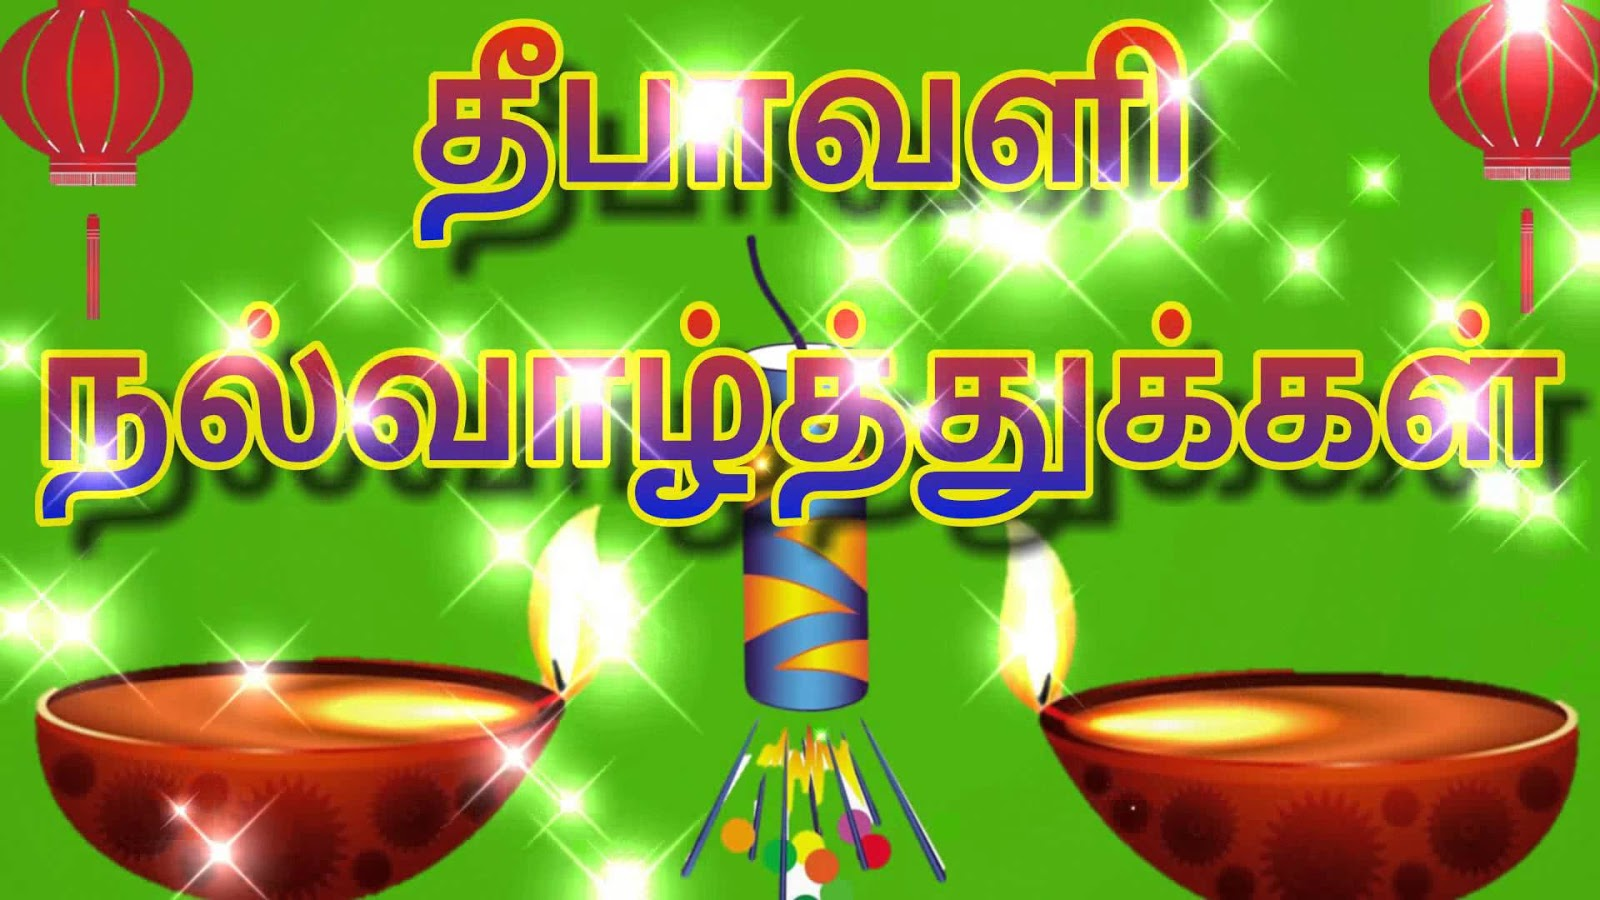 Happy Diwali Wishes with Greetings in Tamil 2018